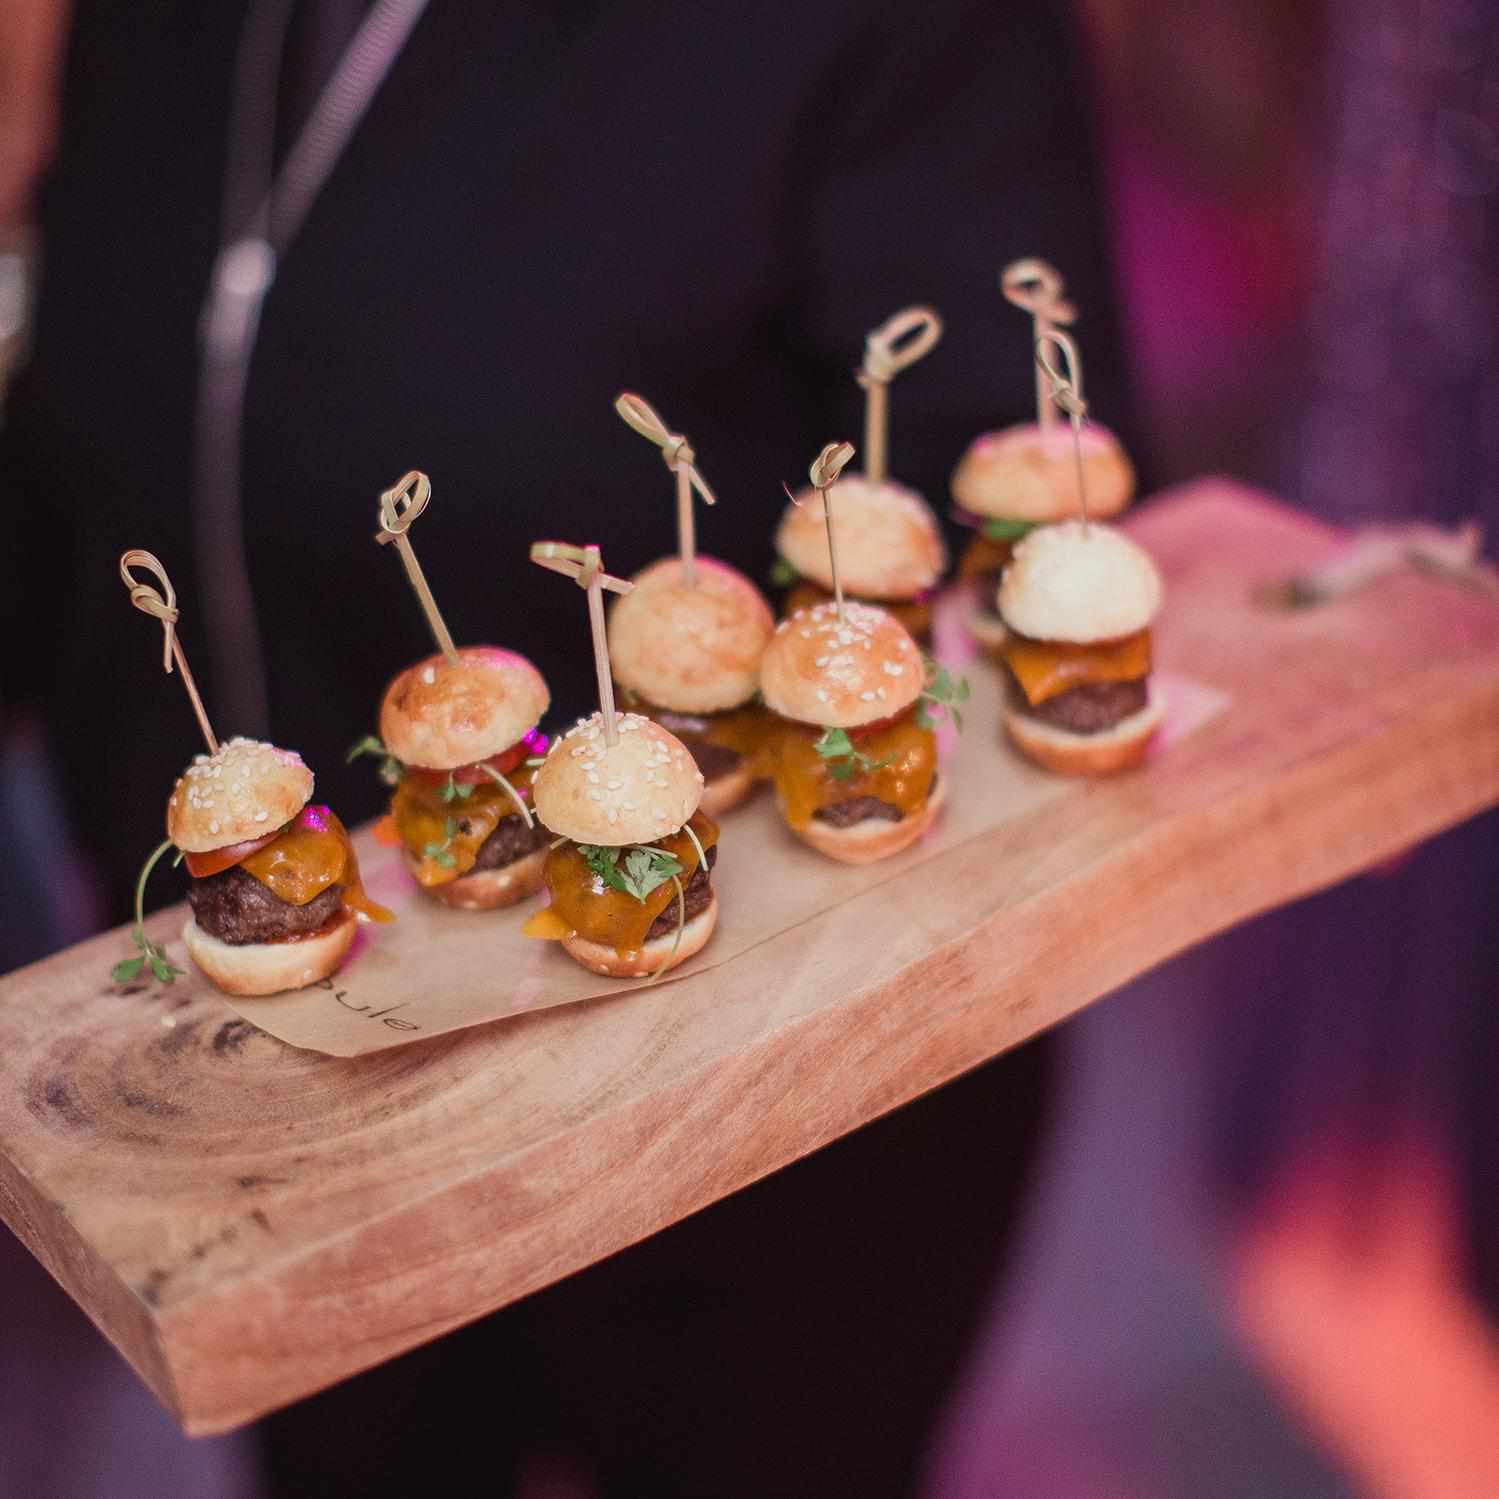 Wedding Finger Food Menu: 17 Hors D'oeuvre Ideas For The Best Cocktail Hour Ever